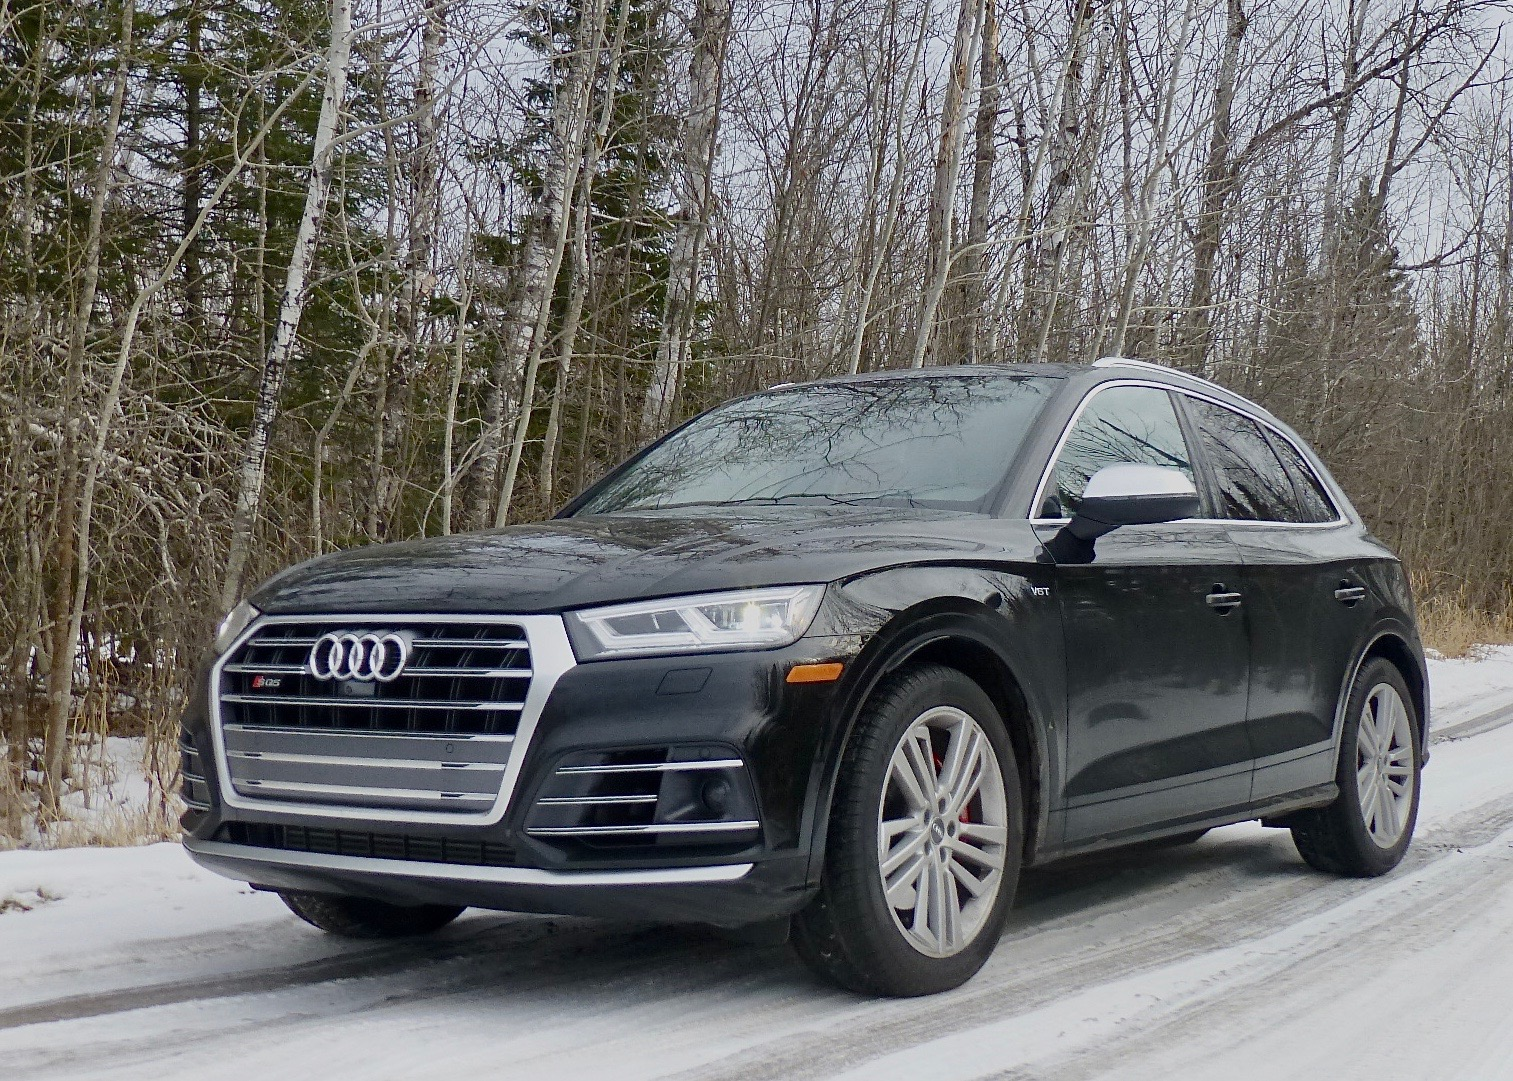 Redesigned Audi Q5 is roomy without bulk and adds the sportier SQ5.